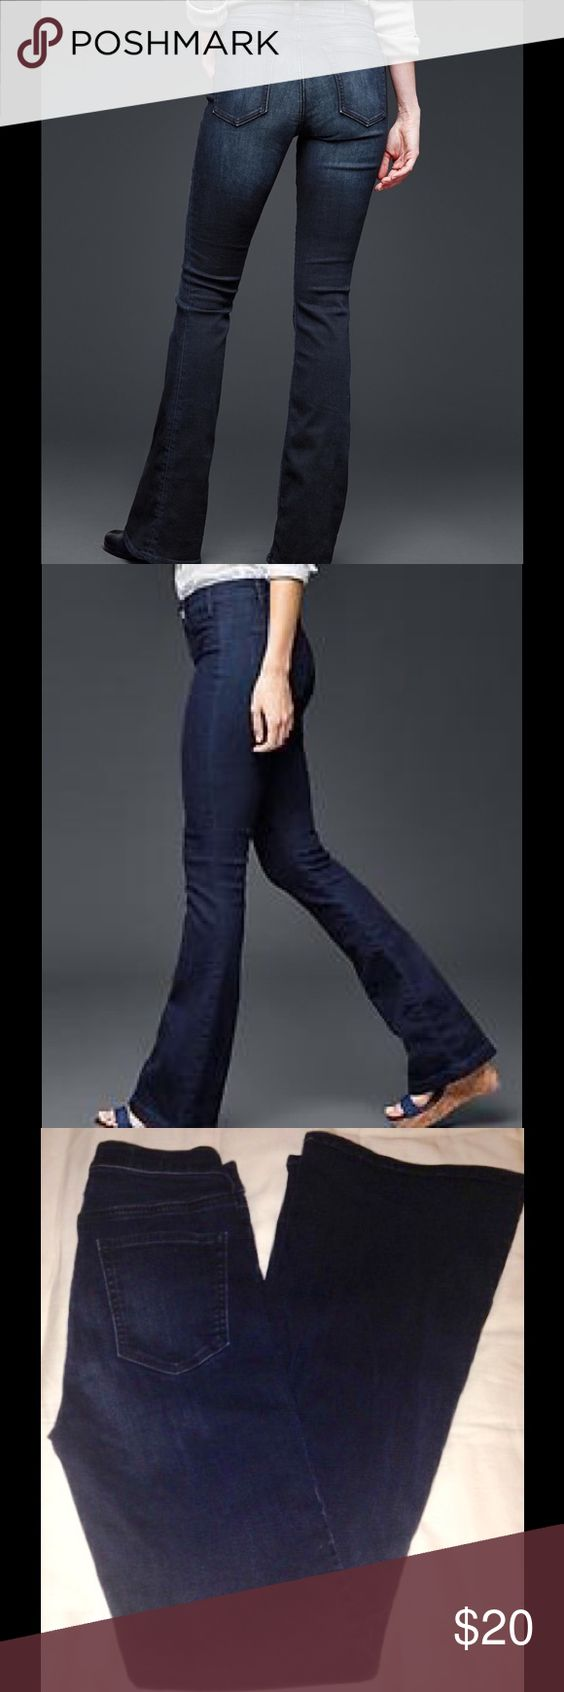 """Gap Resolution Skinny Flare Jean, Darn Wash, 28. This is a sad day ladies. This is that pair of jeans in my closet that I'm going to fit into again. You all know you have a pair of jeans you are saving for when you loose ten pounds. If you are a 28/6, these jeans will do amazing things for your body. My legs looked a million miles long and toned in these. They are a mid-rise, dark wash, with a 33"""" inseam, and 21"""" leg opening. GAP Jeans Flare & Wide Leg"""